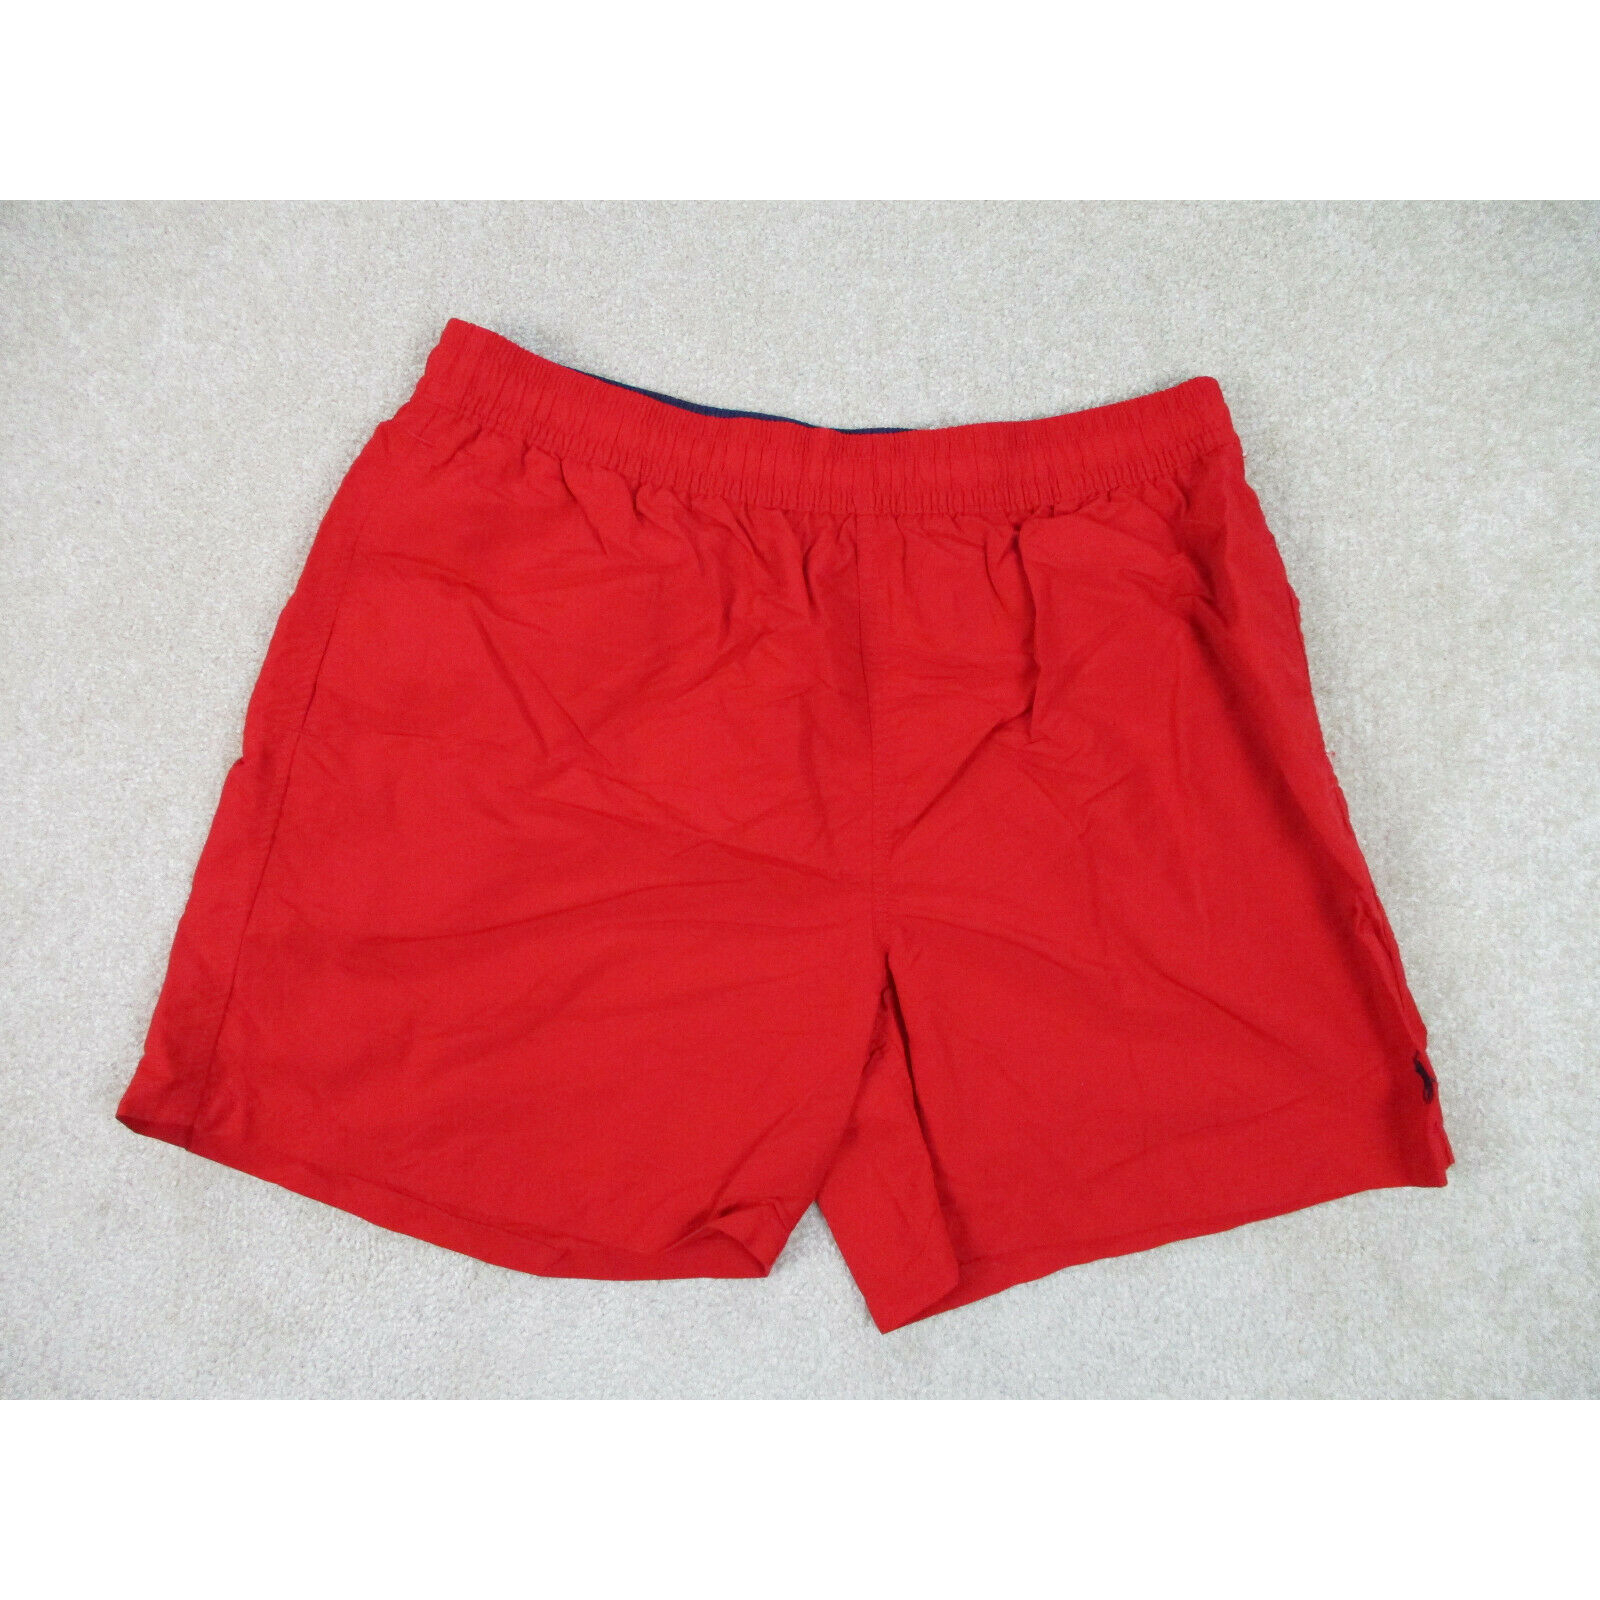 Product Image 1 - Ralph Lauren Polo Trunks Adult